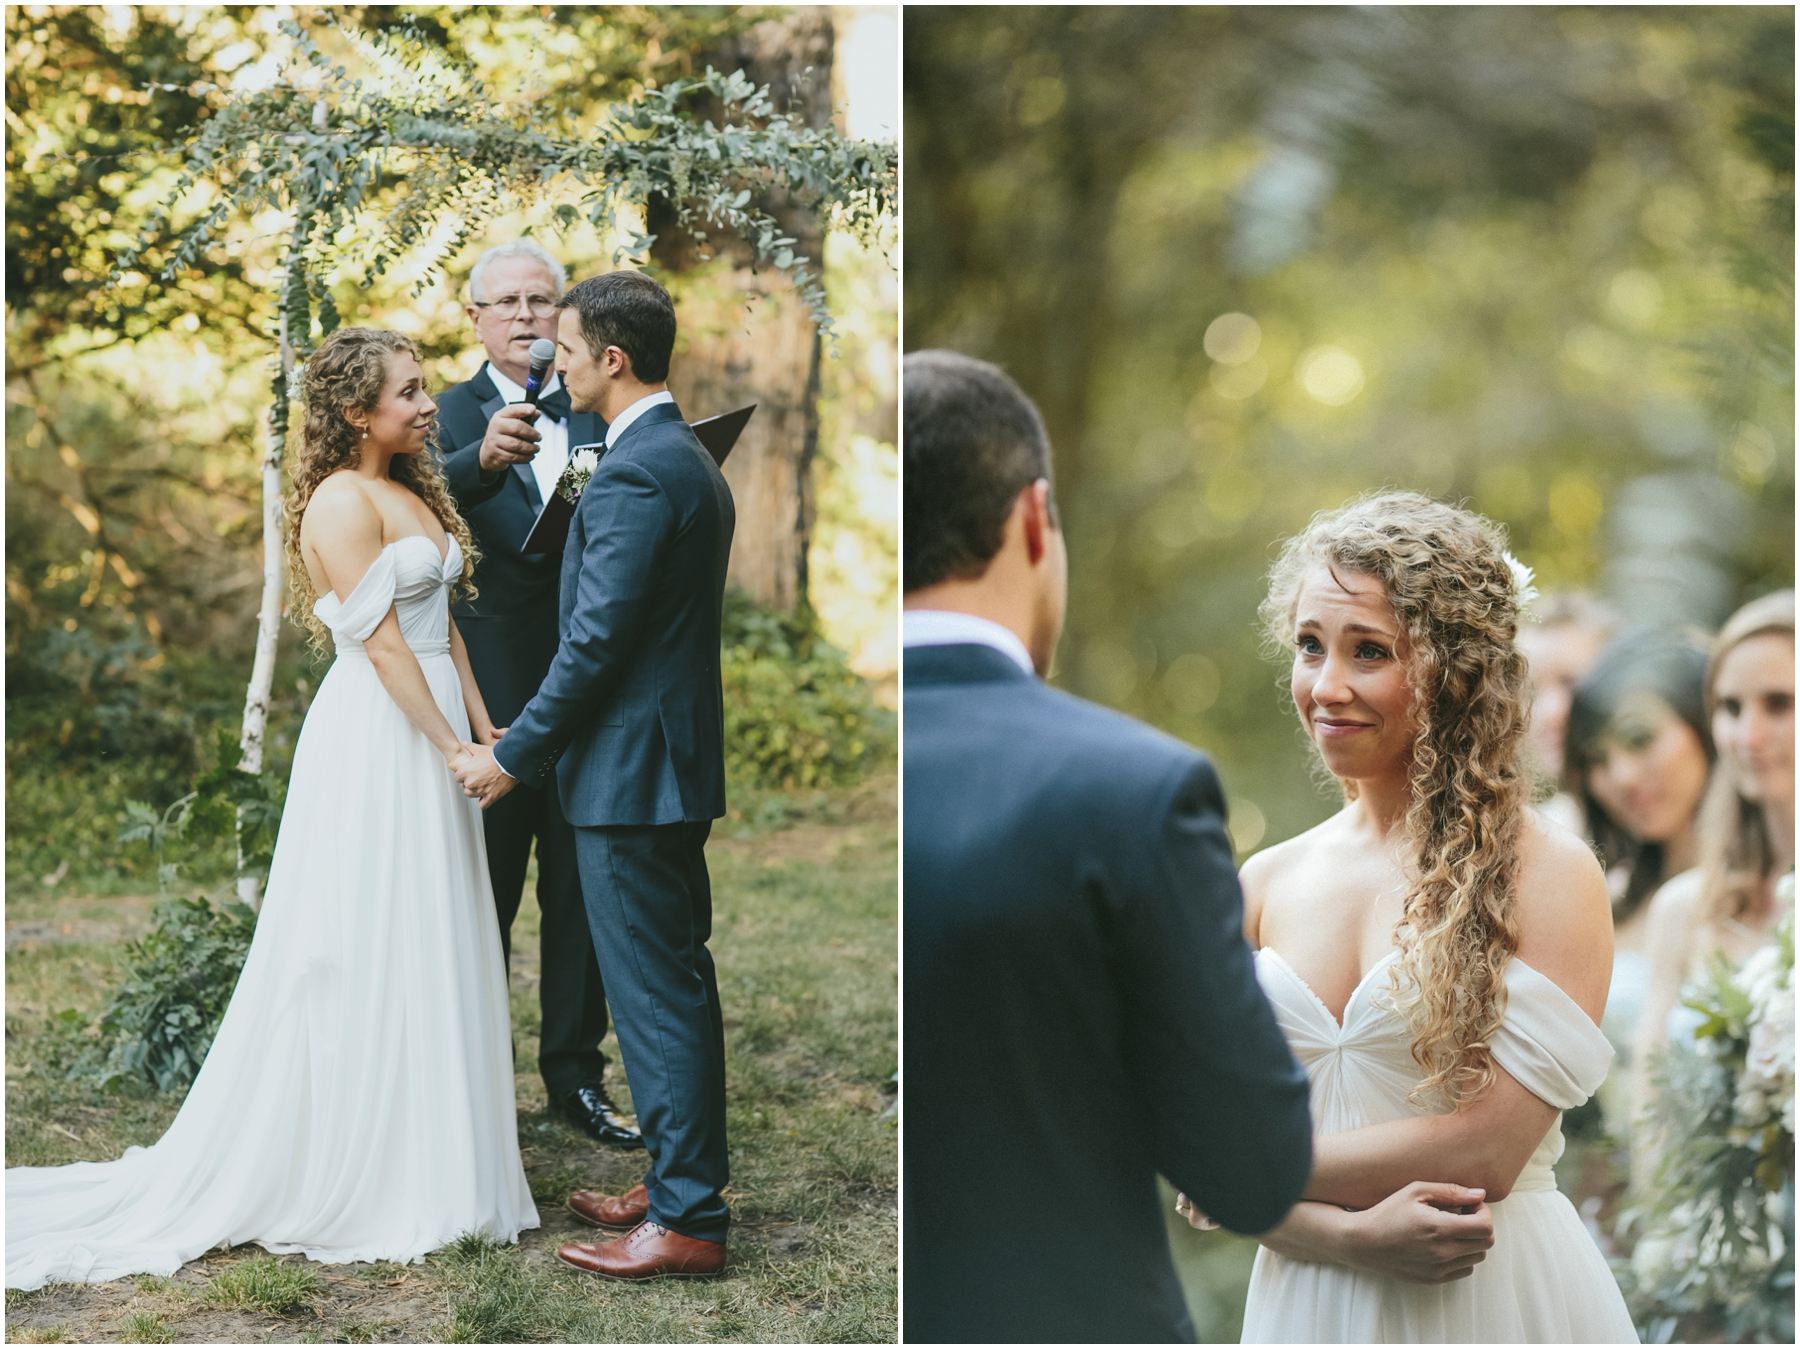 Emily+Paul-WEDDING_KellyBoitanoPhotography_0088